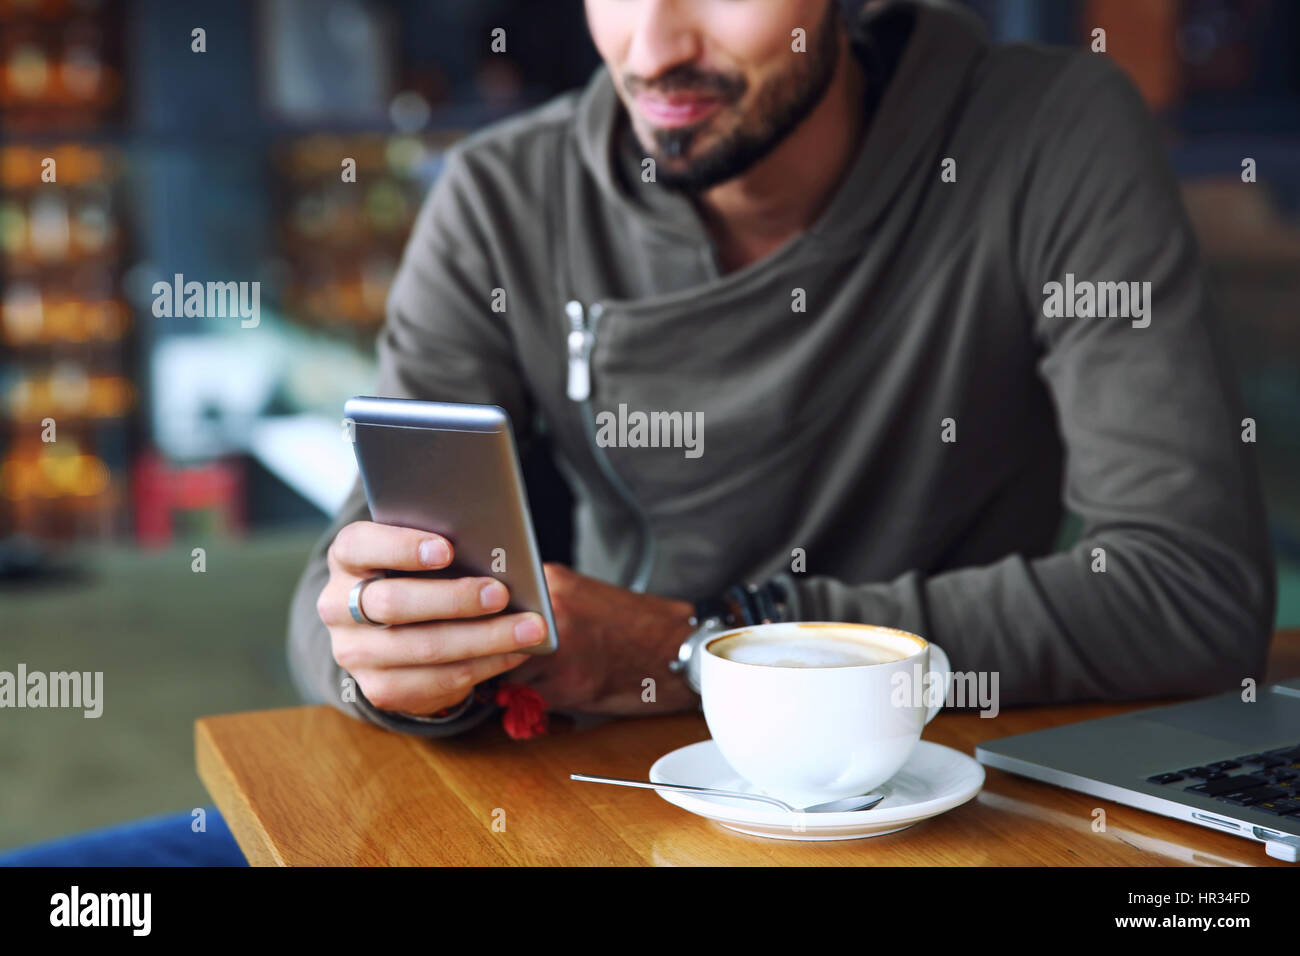 Young handsome cheerful hipster guy at the restaurant using a mobile phone, hands close up. Selective focus. - Stock Image